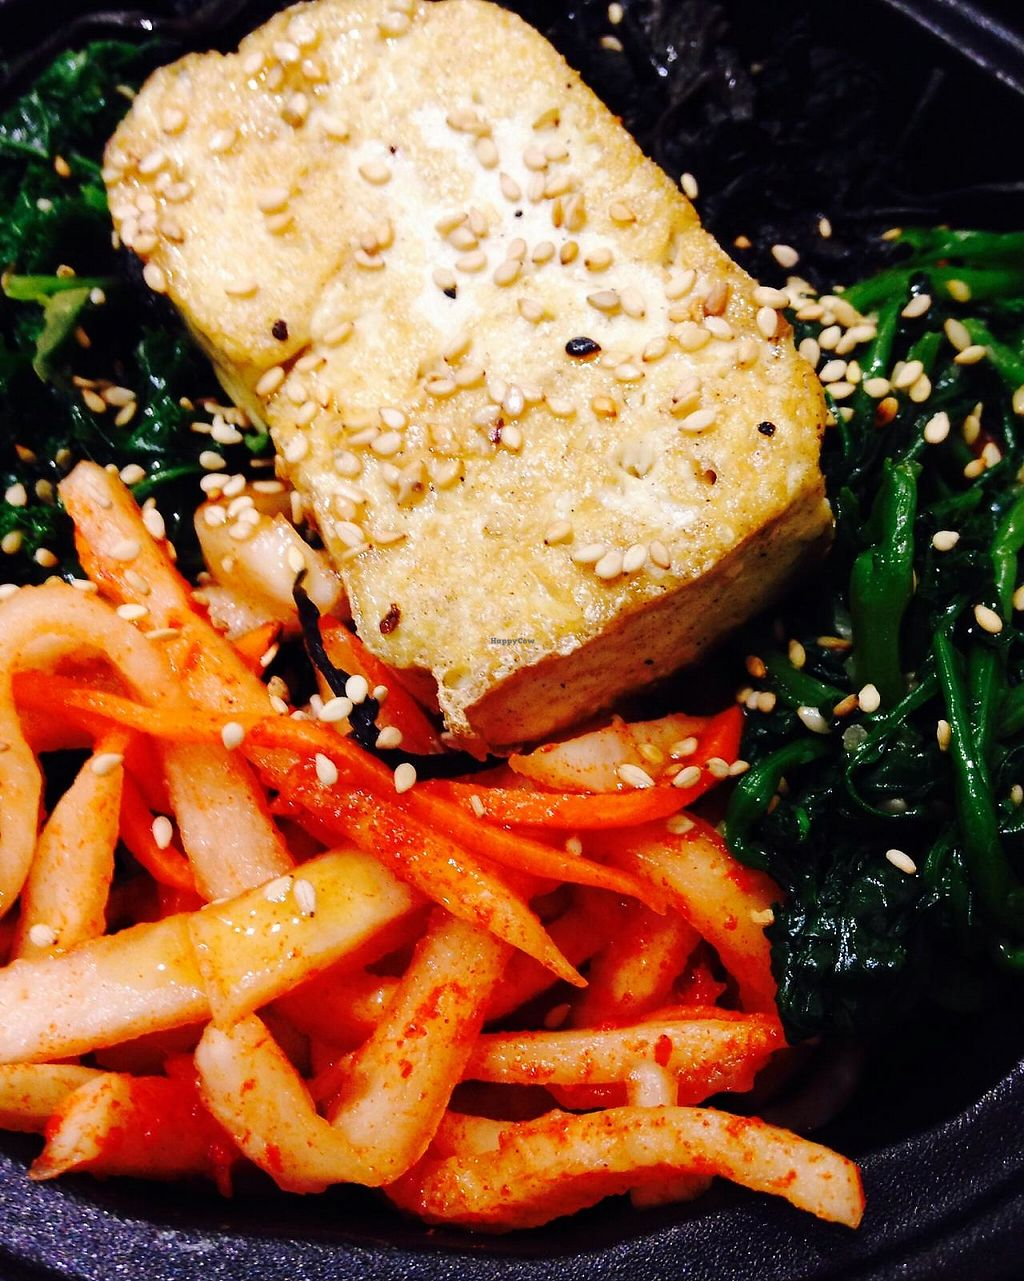 "Photo of Triple B Fresh  by <a href=""/members/profile/cookiem"">cookiem</a> <br/>Make your own bibimbap with tofu + 4 veggies + rice (brown, white or black) <br/> February 19, 2015  - <a href='/contact/abuse/image/51417/191567'>Report</a>"